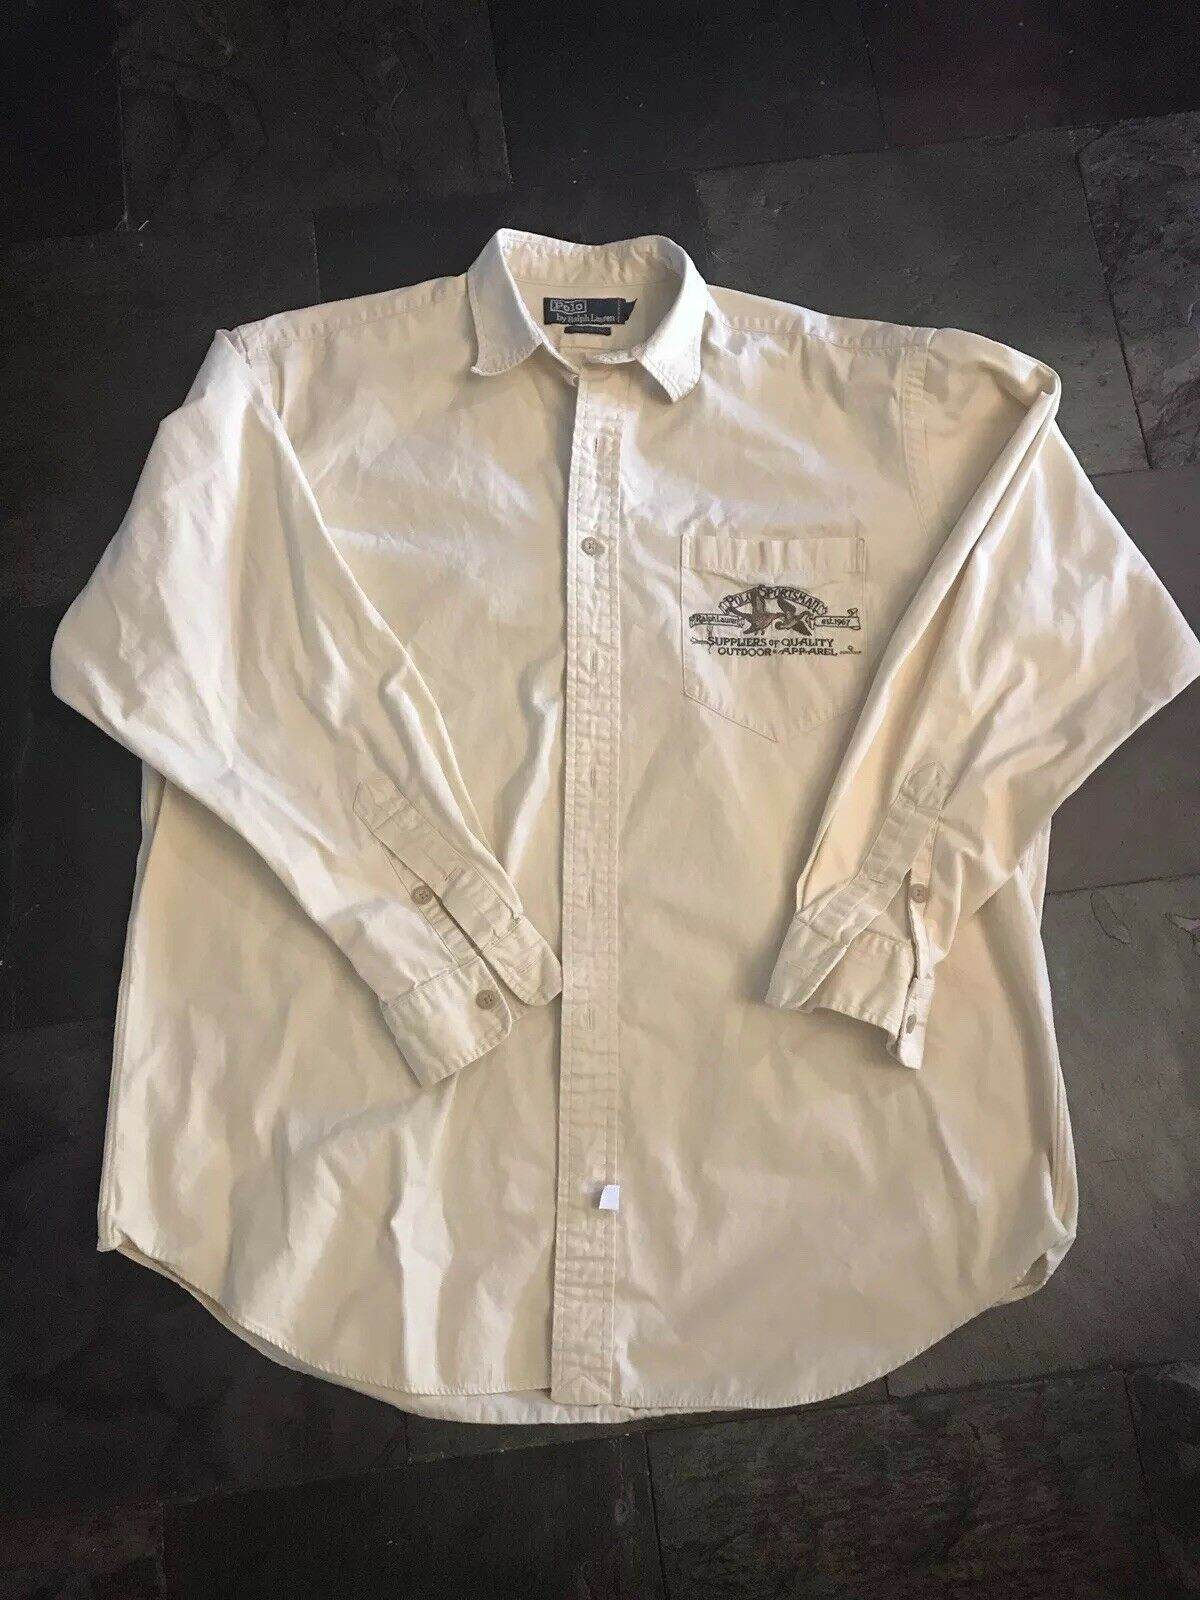 72323f13 Rare Vintage Polo Ralph Lauren Sportsmans Edition Button Down Size Large  nqigyt4903-Casual Shirts & Tops